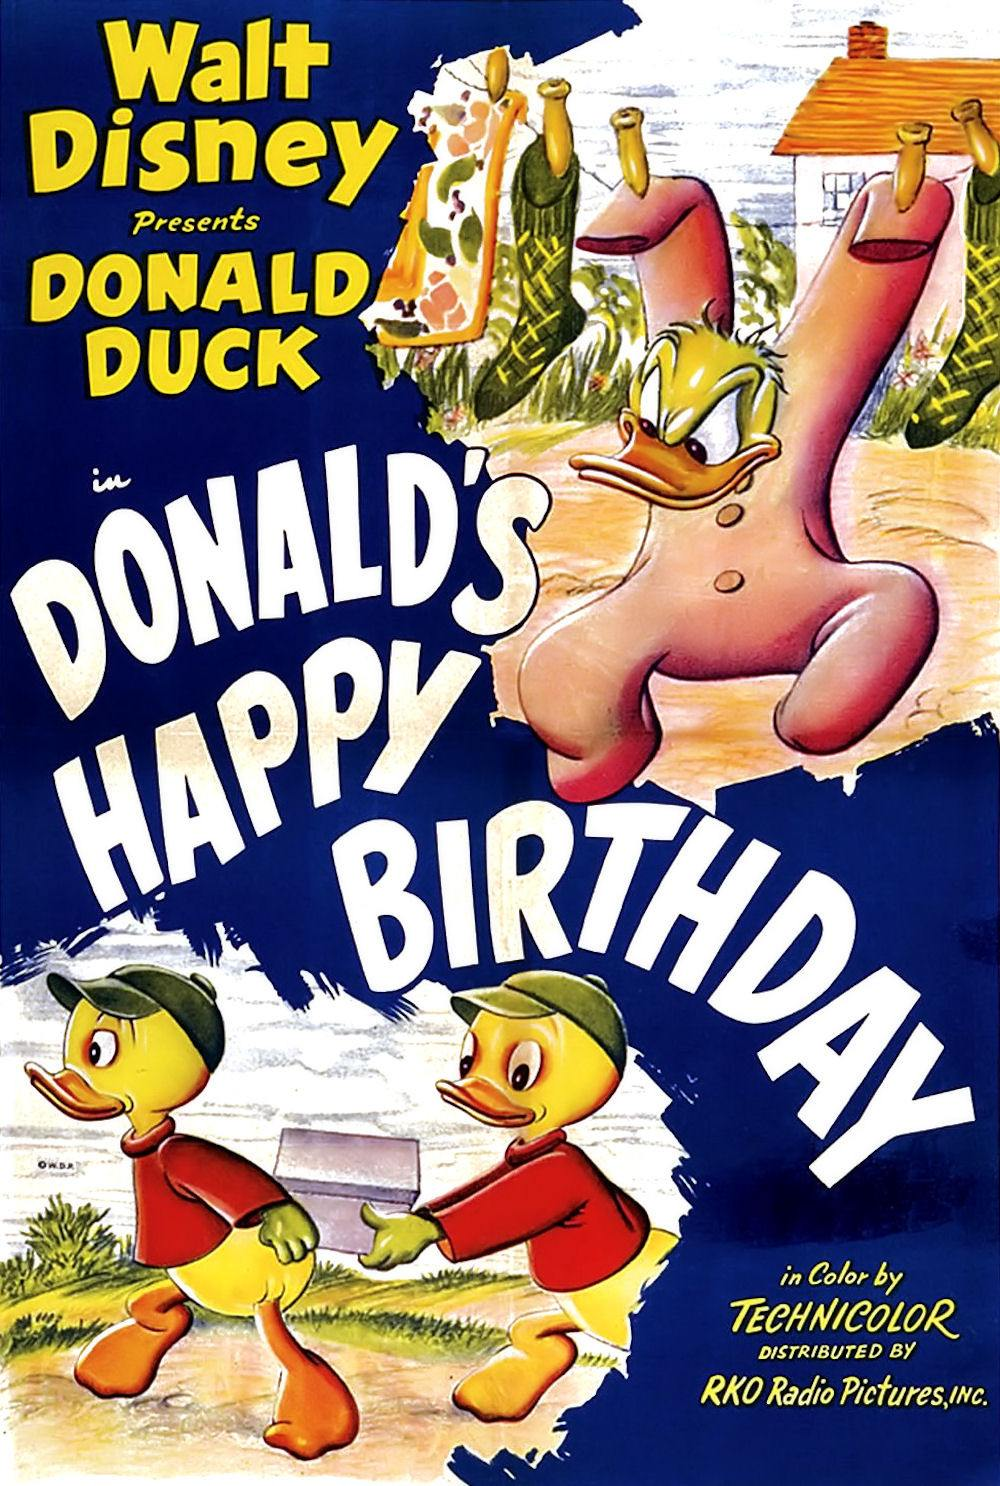 Affiche Poster pile farces donald happy birthday disney